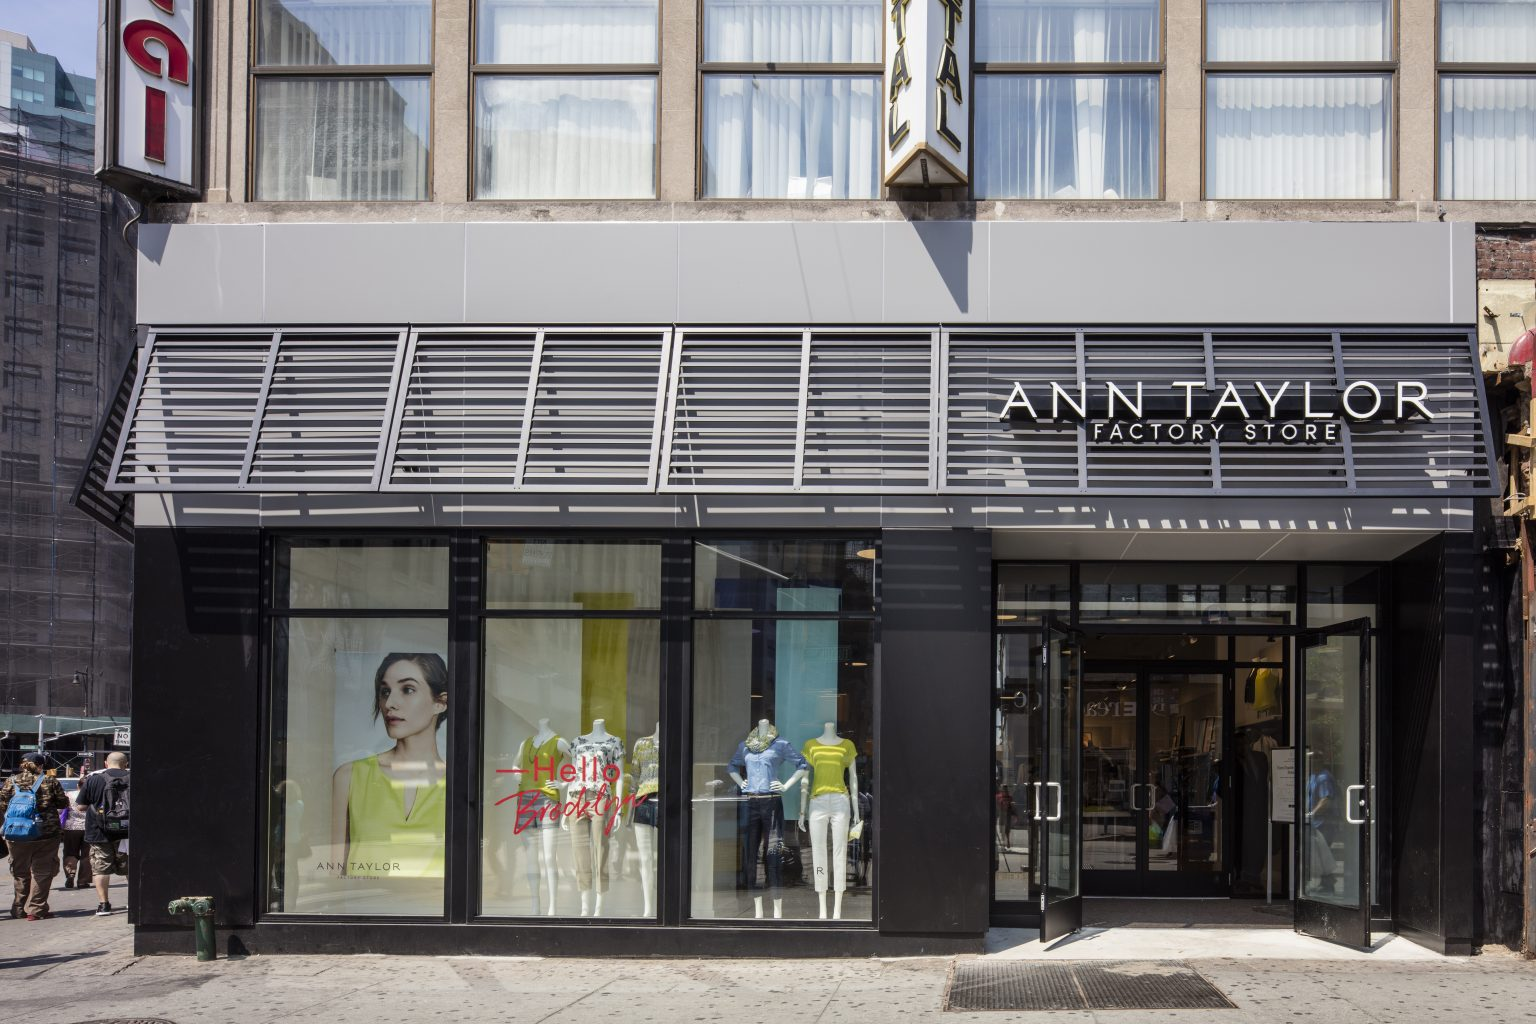 Ann Taylor Factory Store